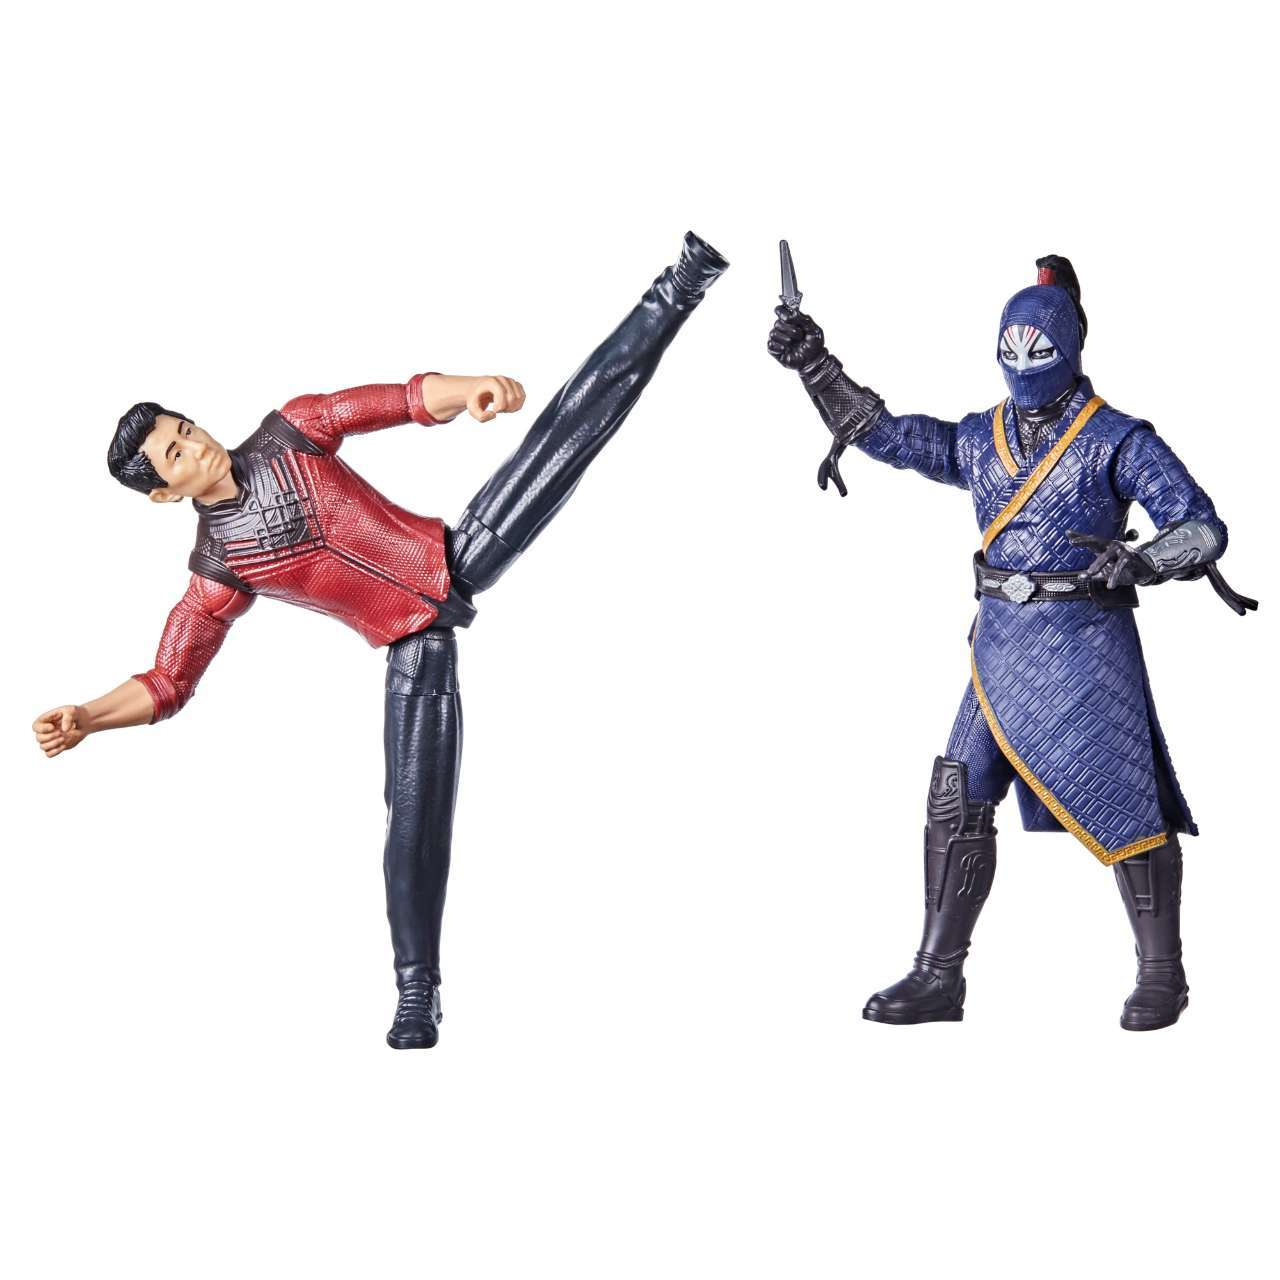 MARVEL SHANG-CHI AND THE LEGEND OF THE TEN RINGS 6-INCH BATTLE PACK Figures - oop (1)